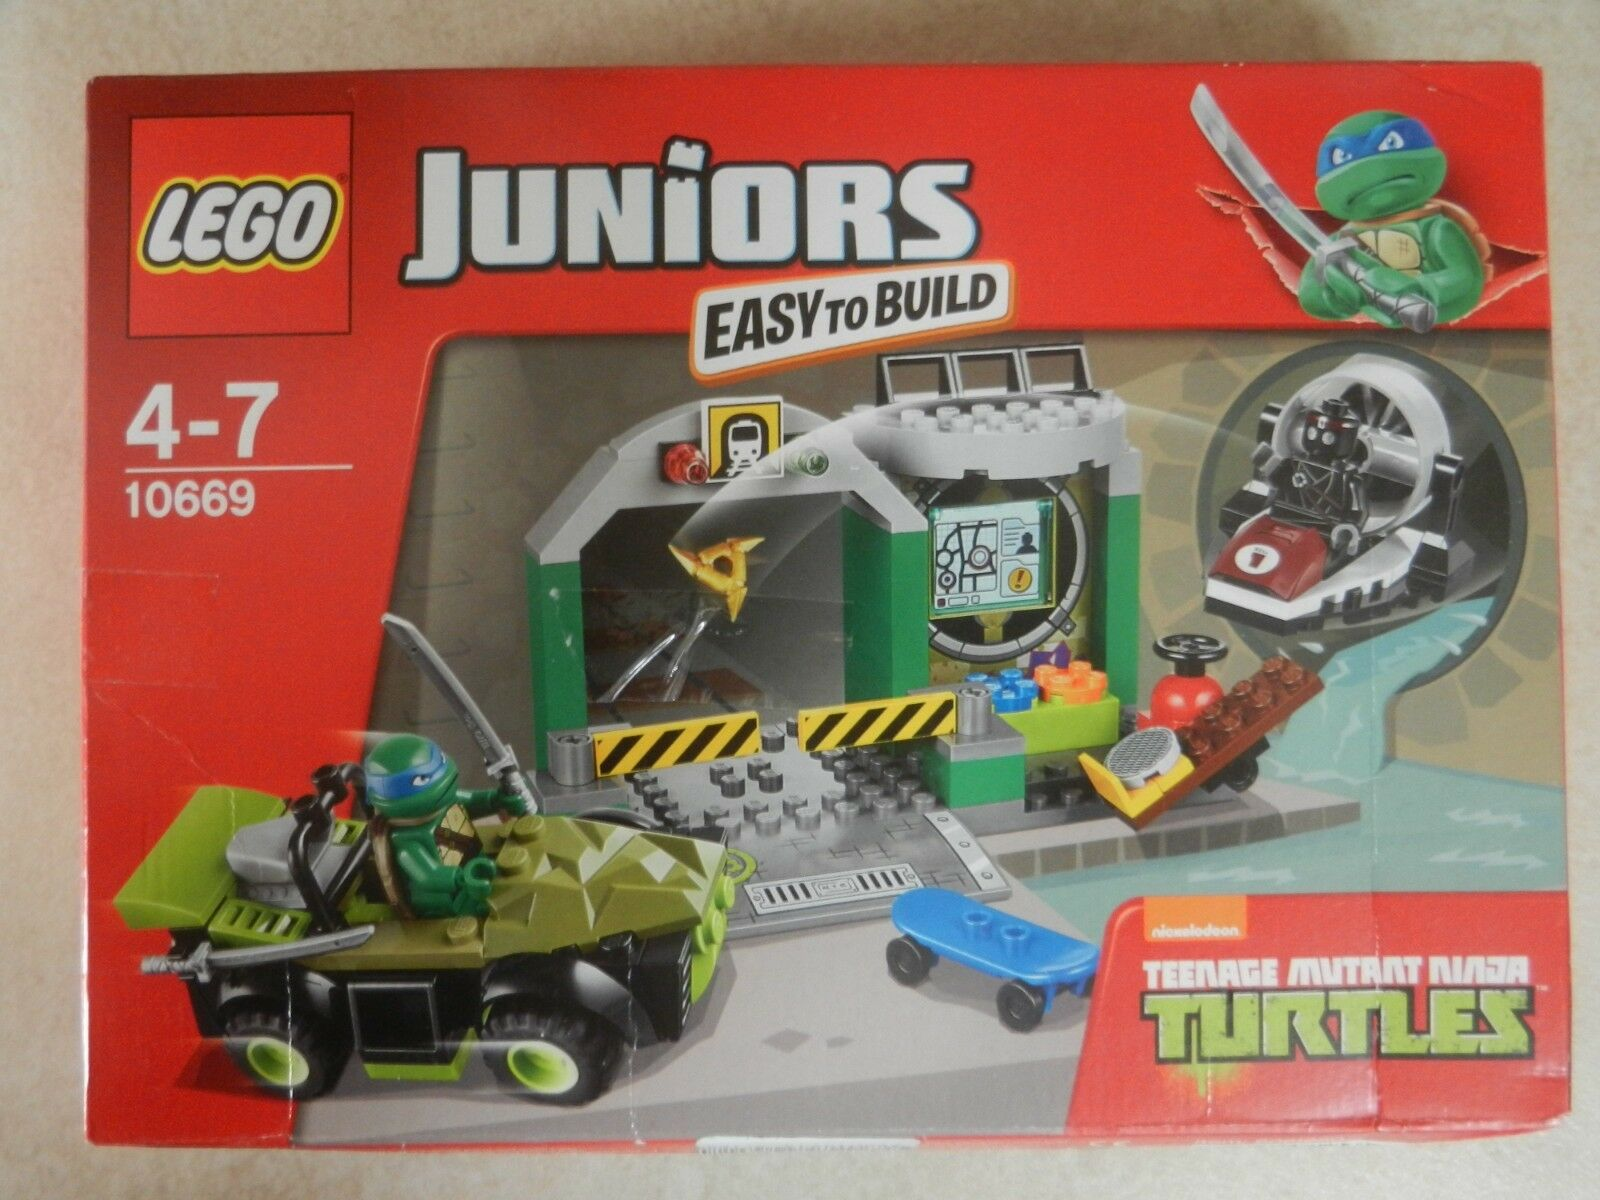 BNIB Lego 10669 Juniors Turtles Lair TMNT Teenage Mutant Ninja Turtles